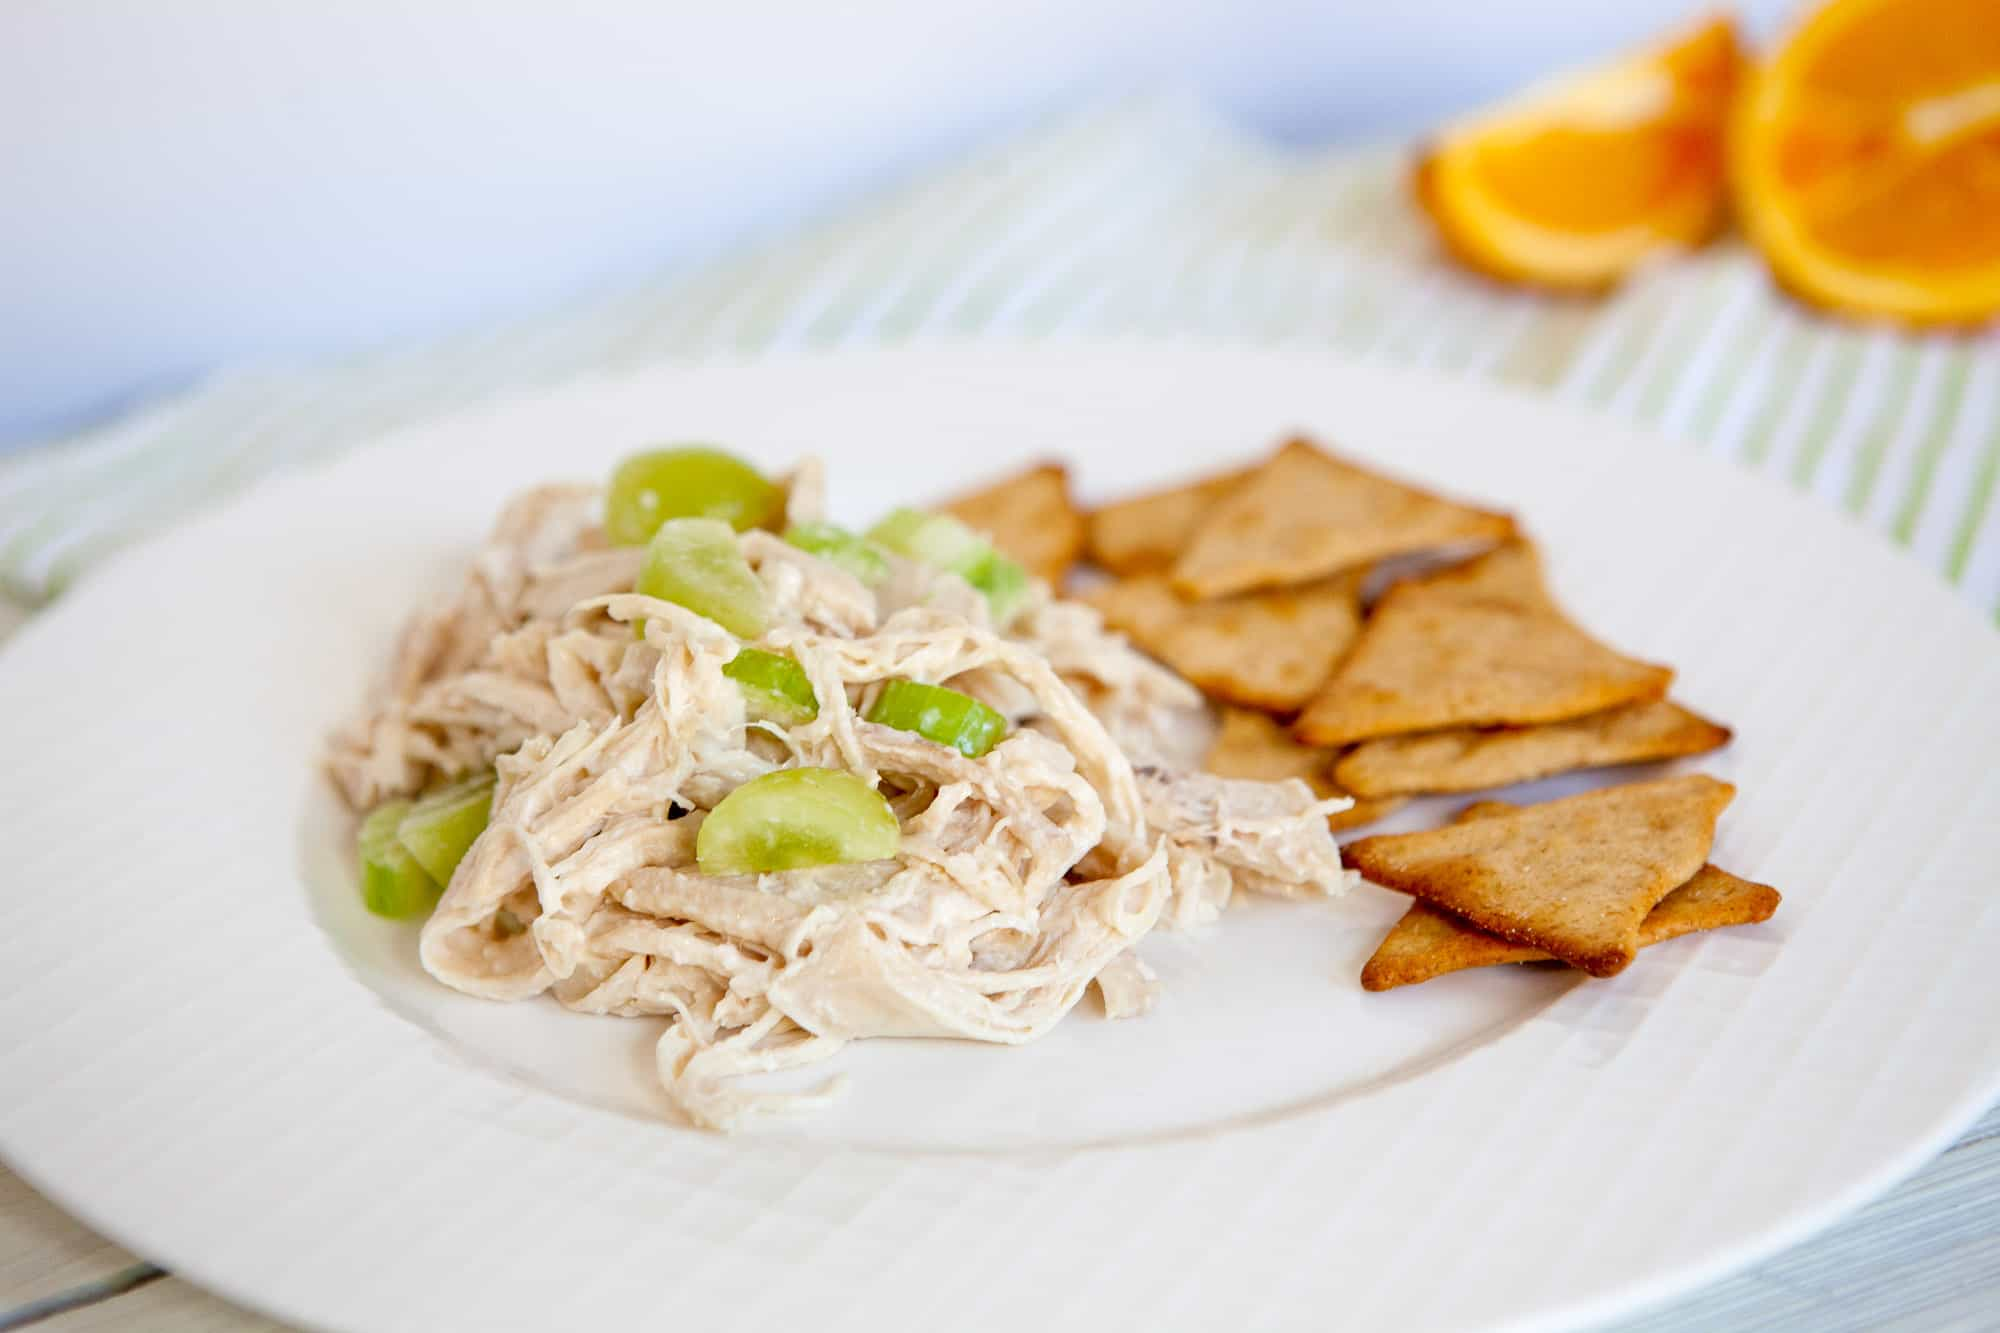 weight watchers chicken salad with crackers on white plate